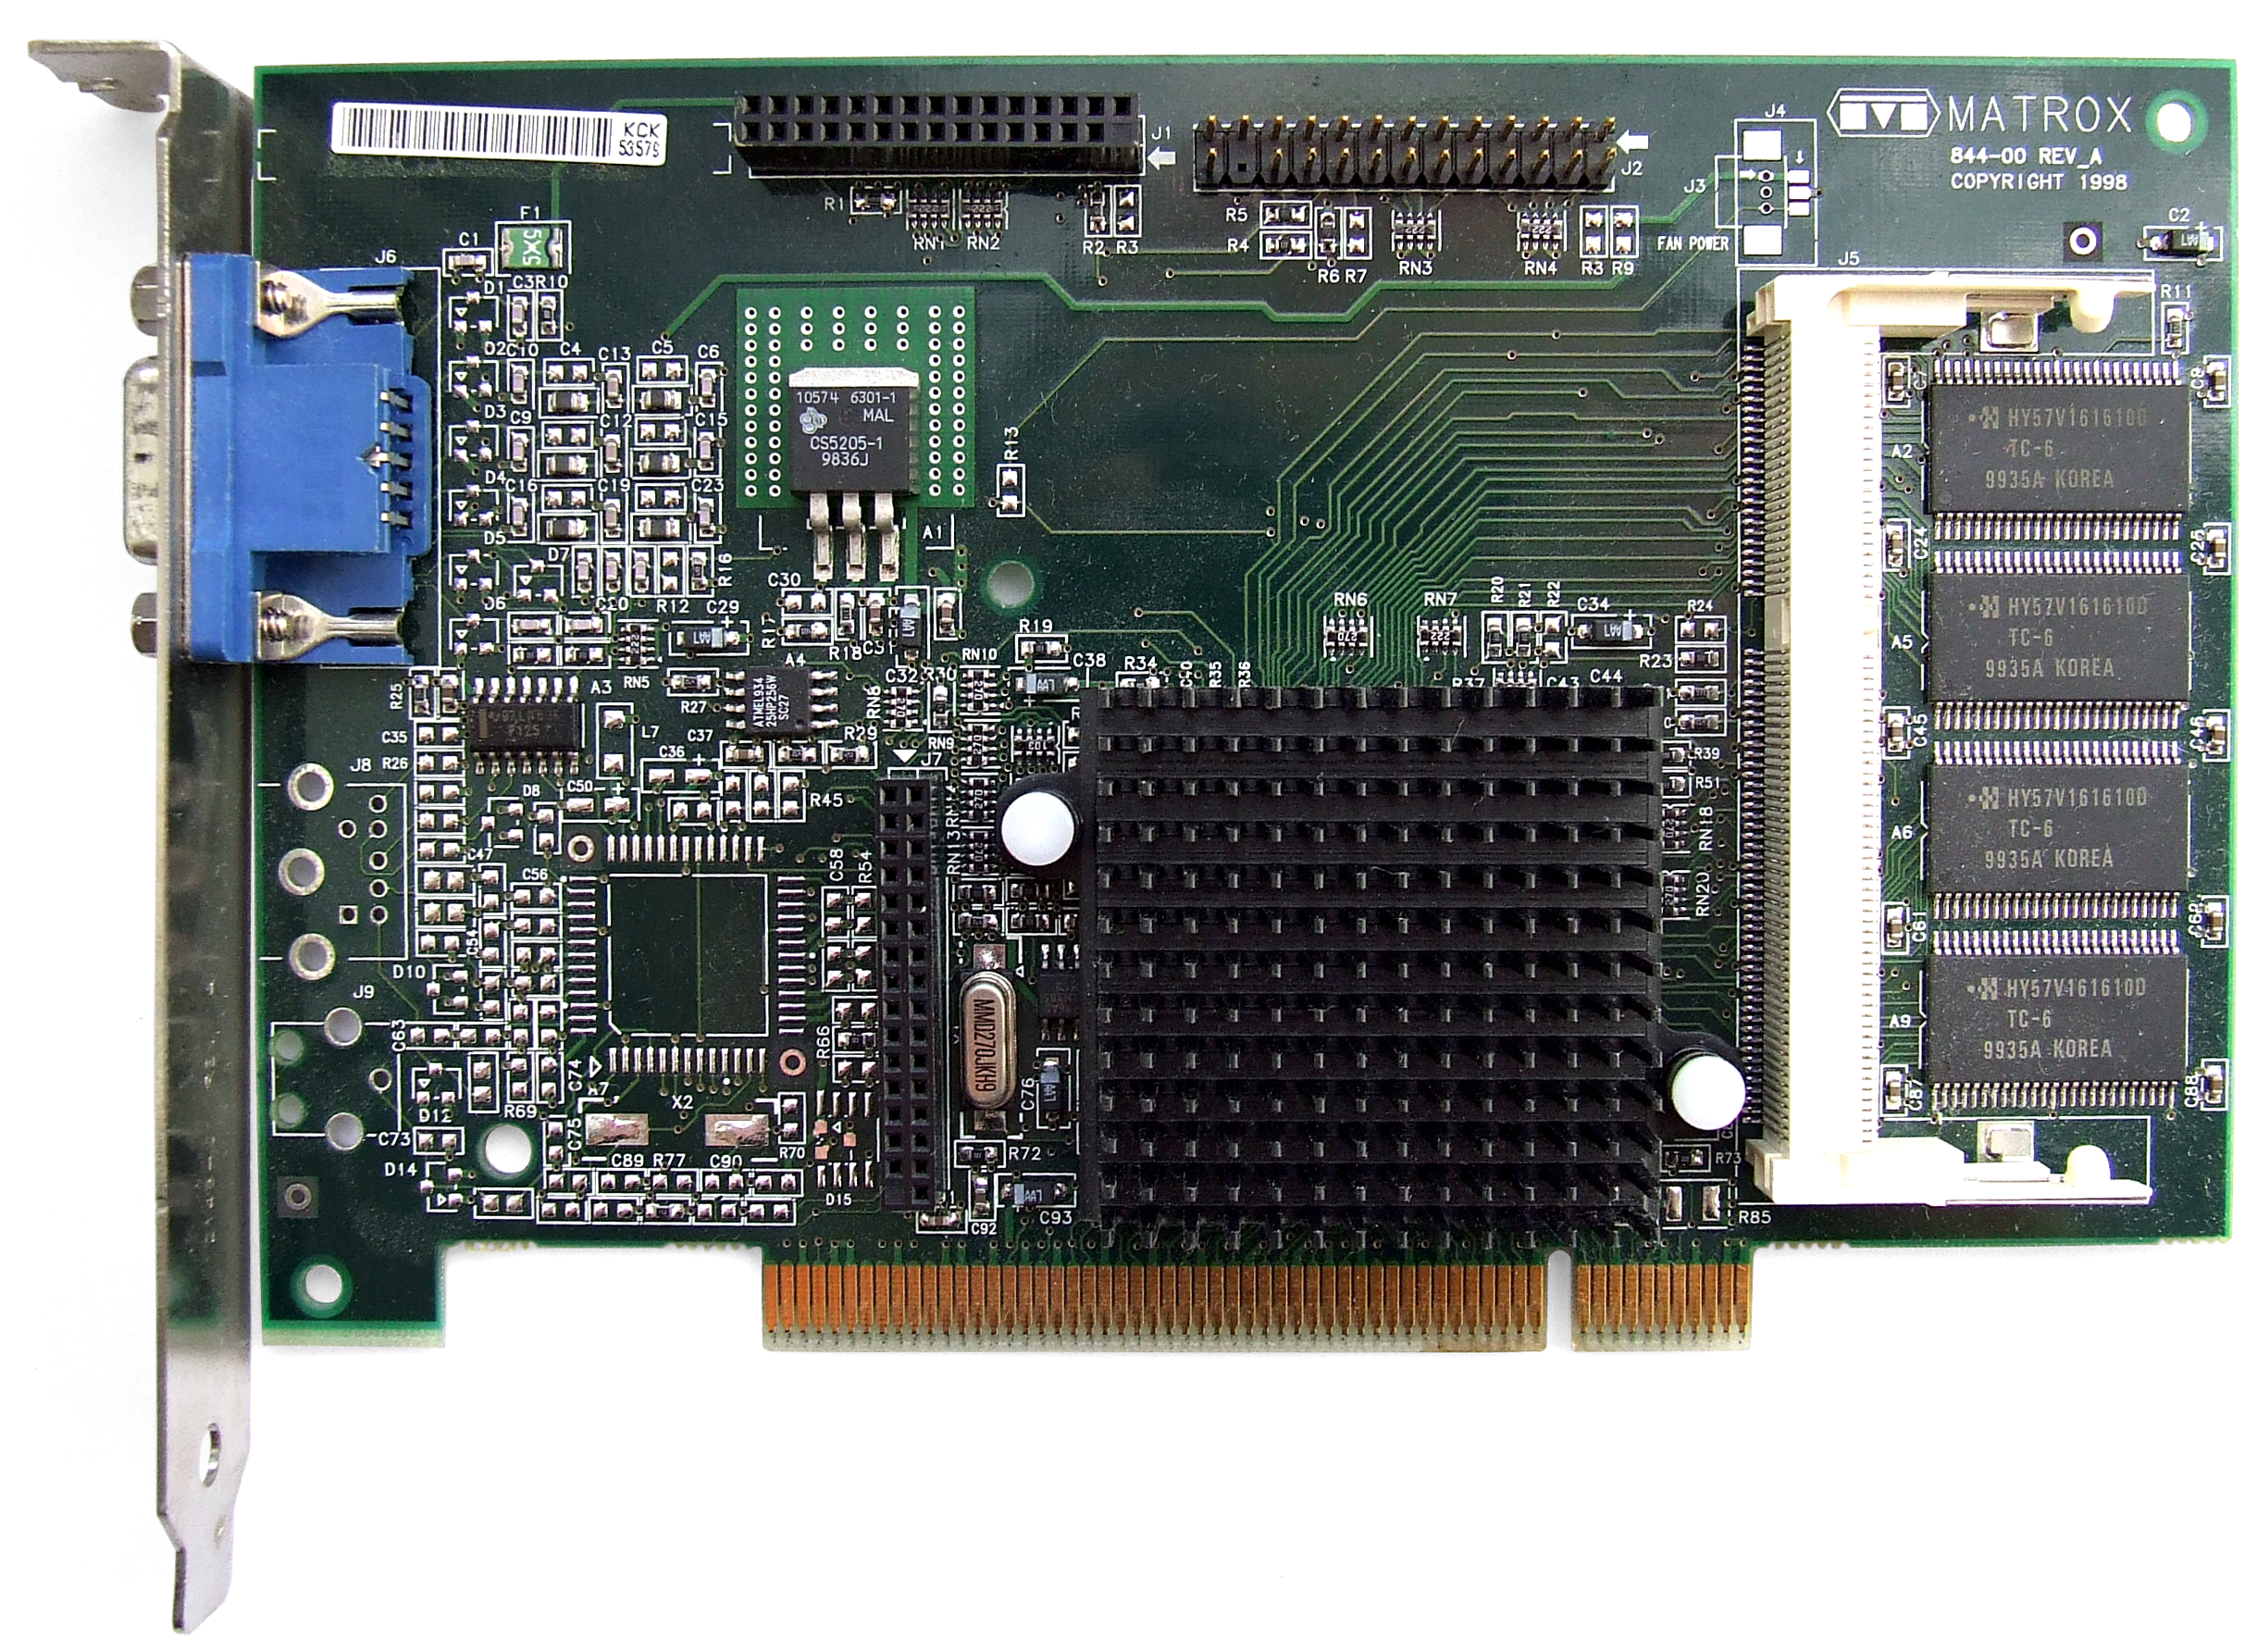 MATROX G200 PCI WINDOWS 8 X64 TREIBER